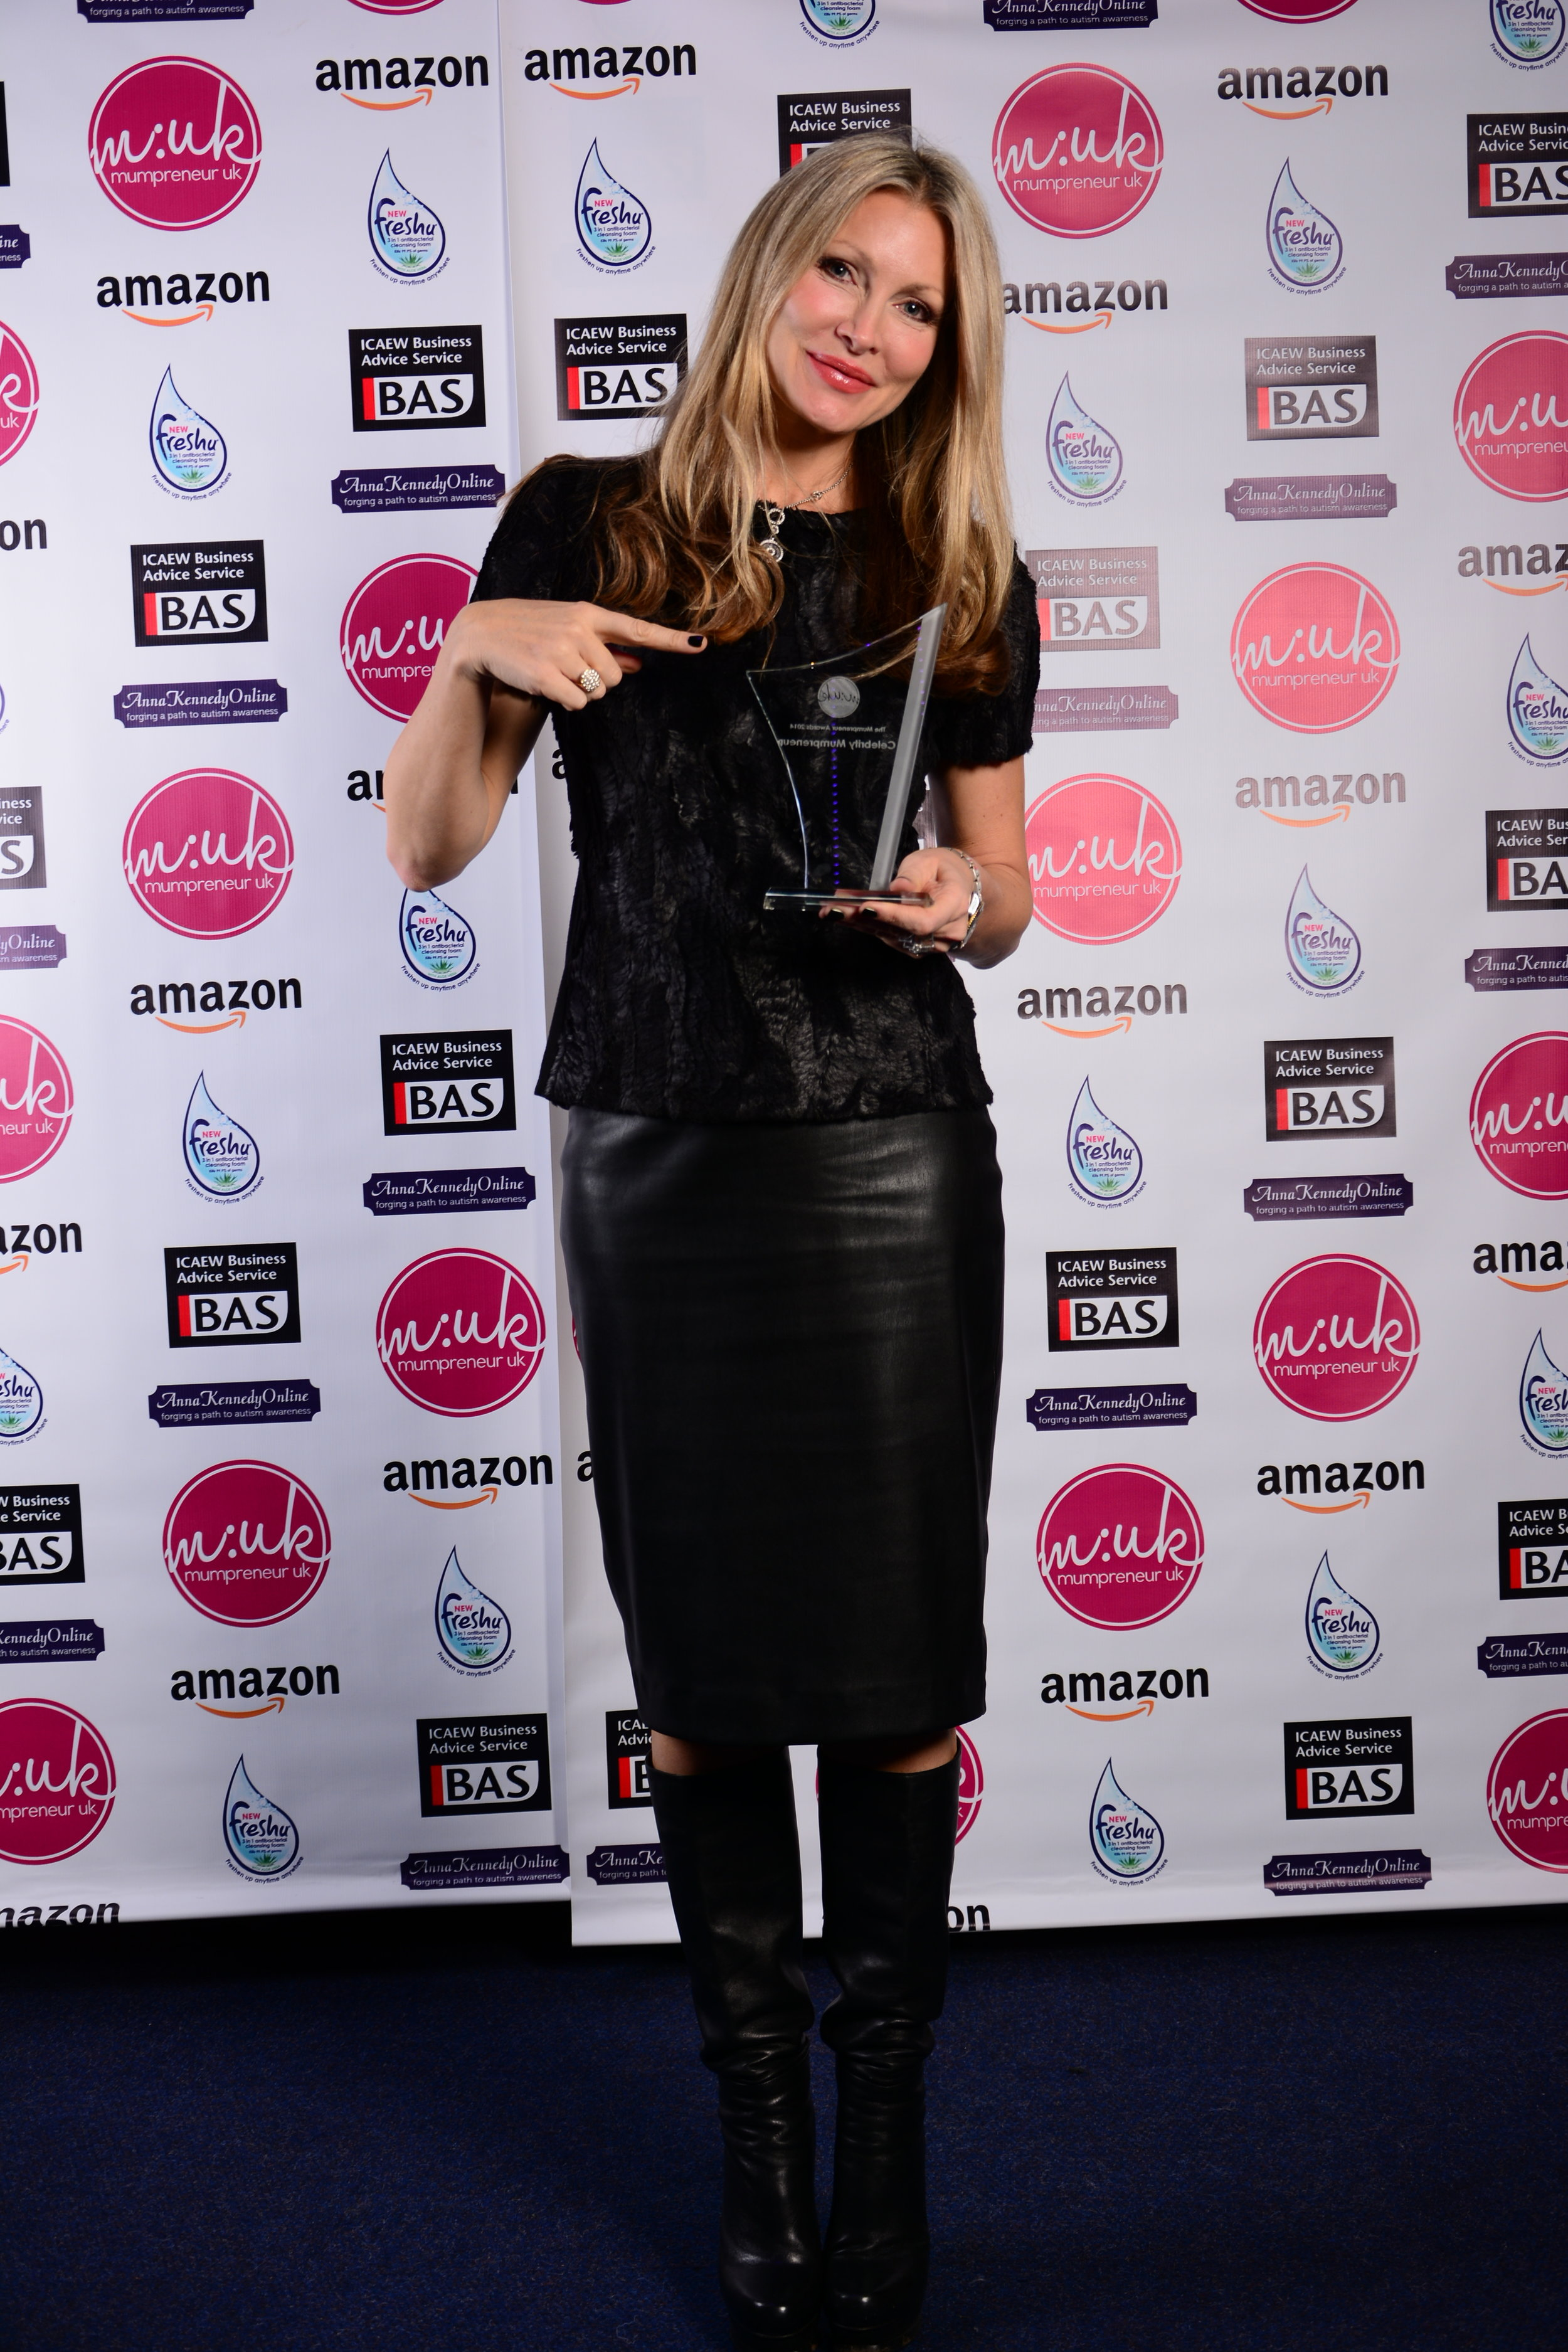 MUMPRENEUR CONFERENCE AND AWARDS - Caprice won 'Celebrity Mumprenuer of the Year' and spoke to 250 of the crème-de-la-crème parent owned businesses at the industry renowned Mumpreneur Conference & Awards.2015